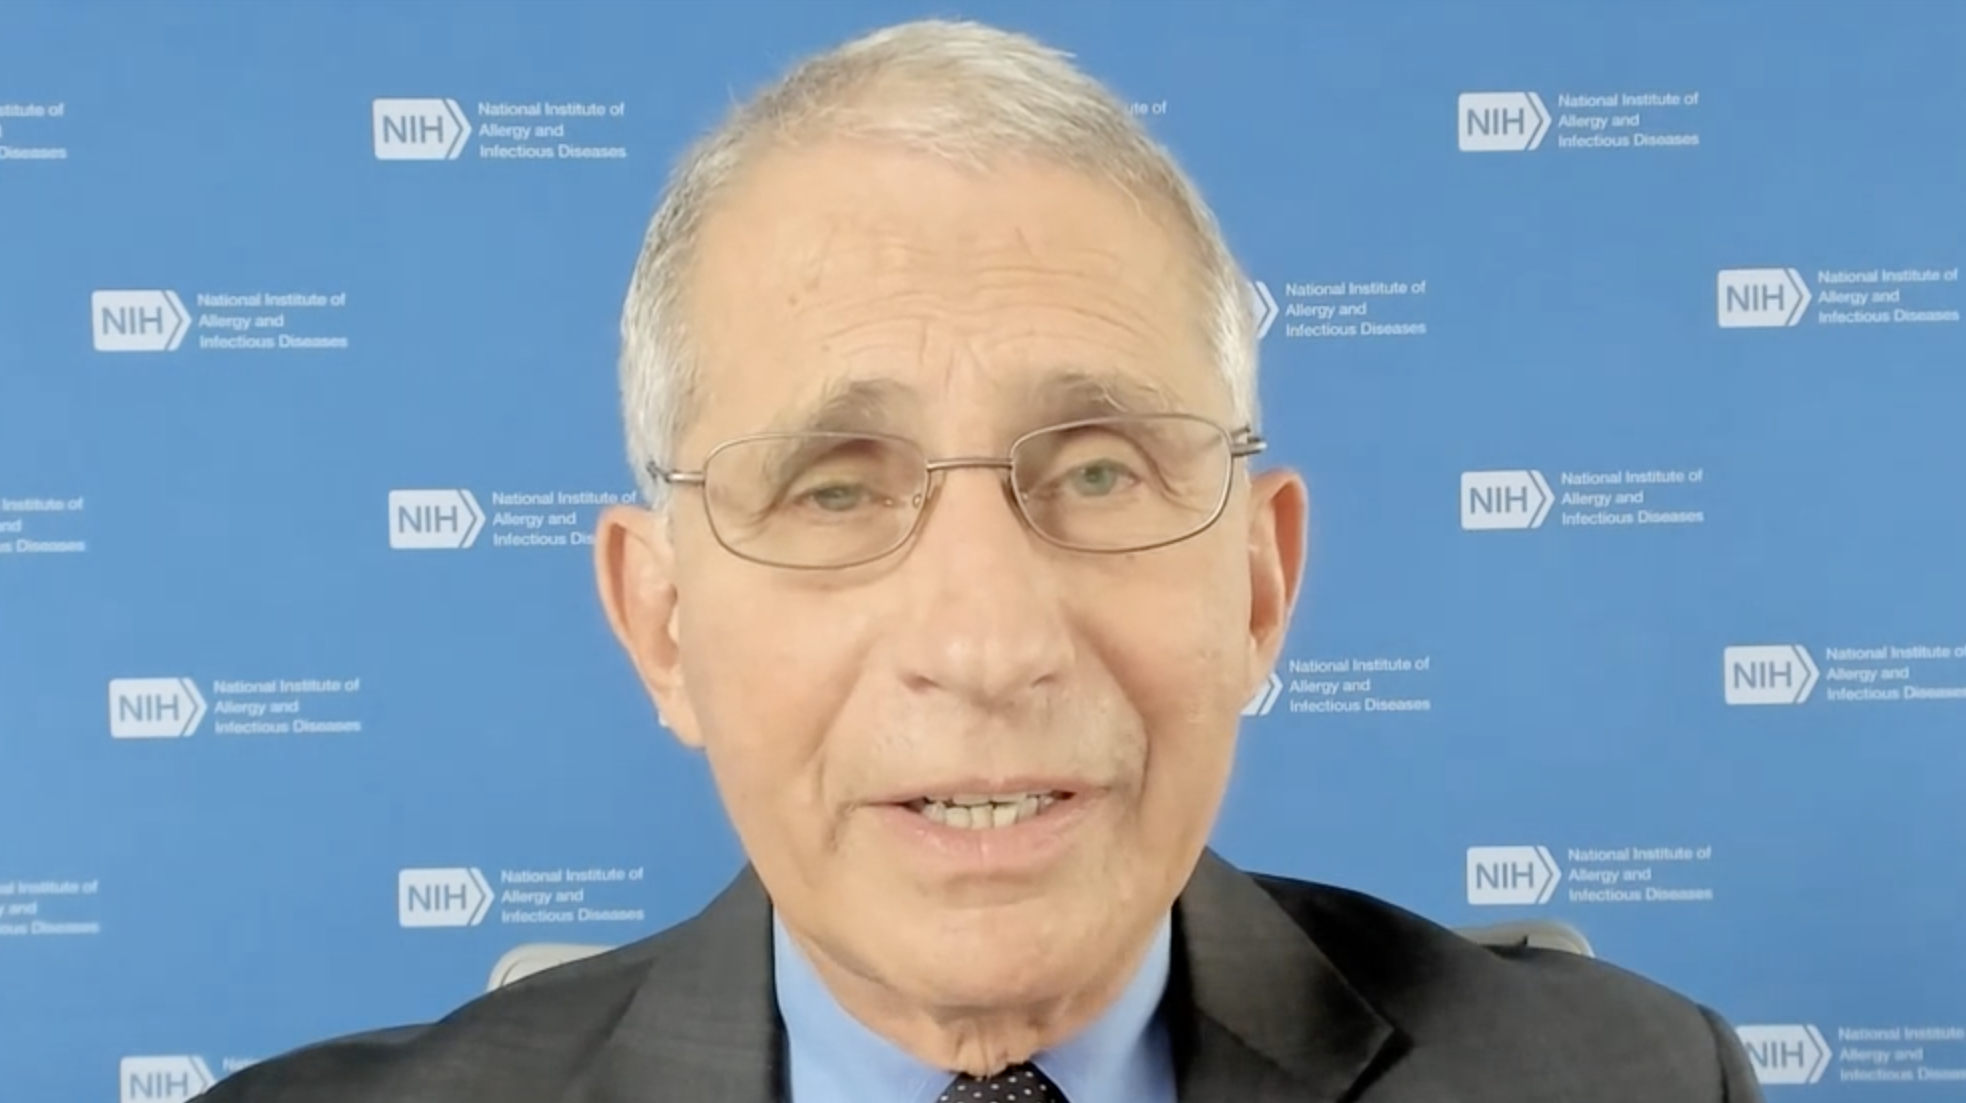 Fauci: Early COVID-19 vaccines will only prevent symptoms, not block the virus